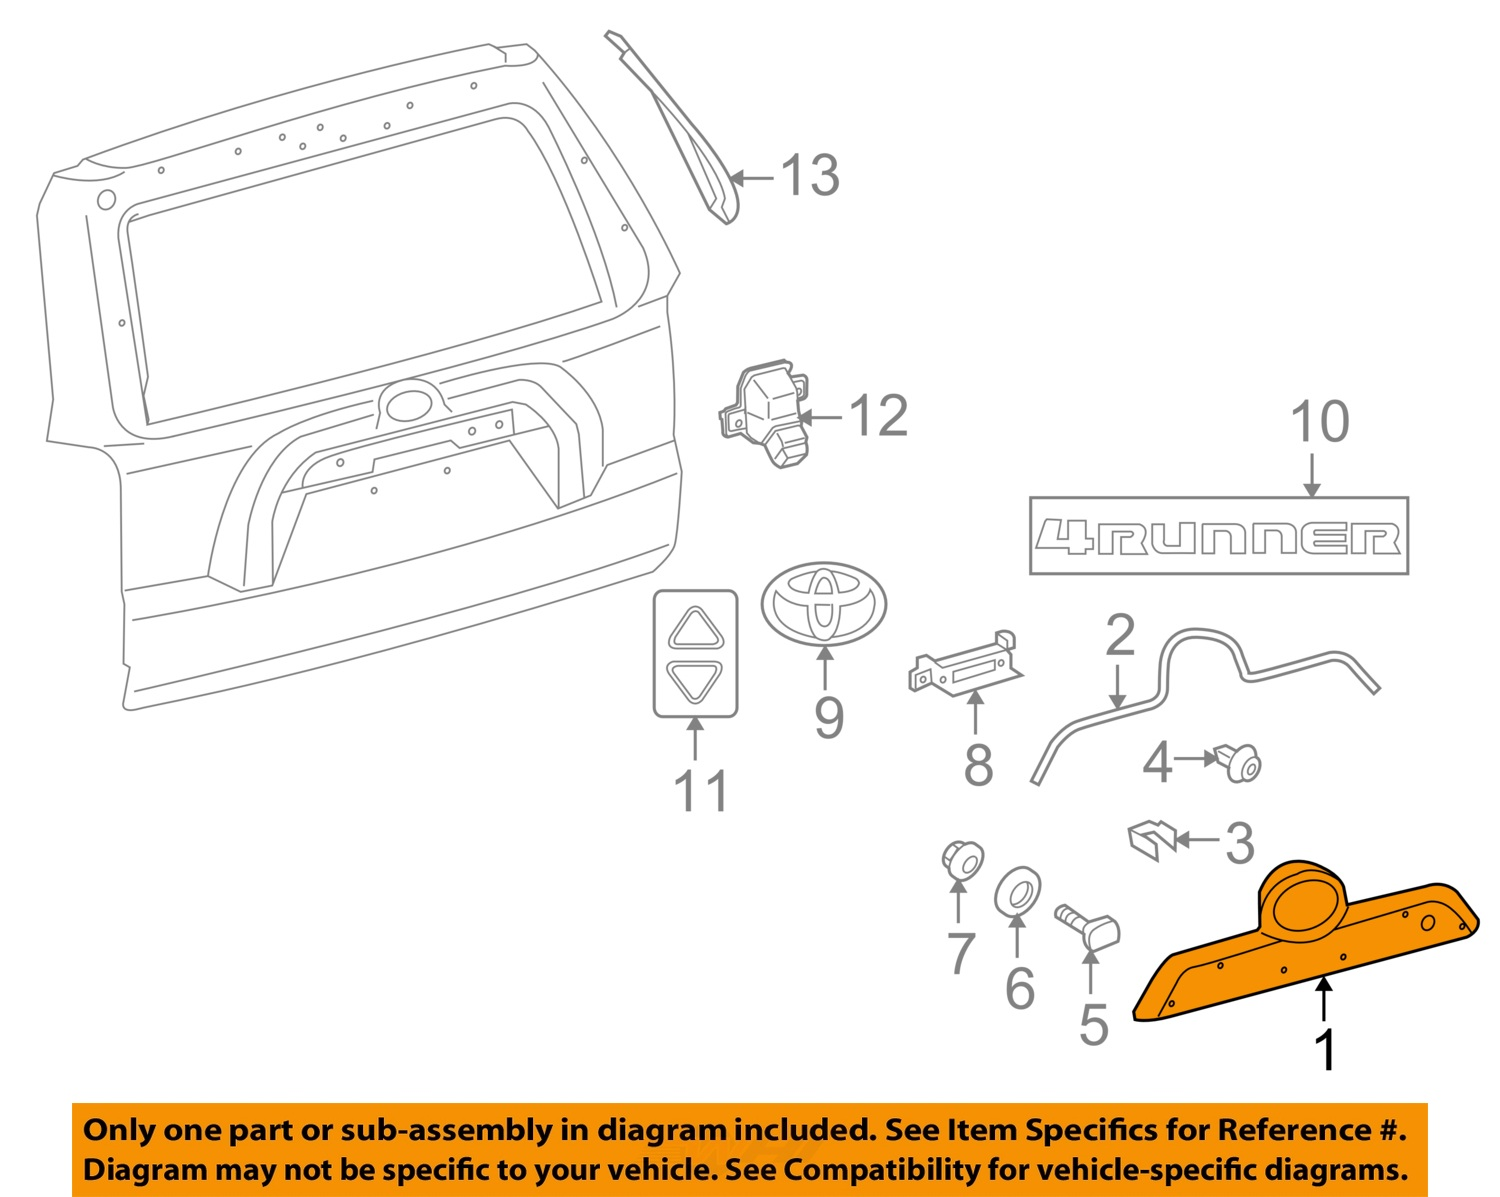 2012 Toyota 4runner Wiring Diagram Library 1996 4 Runner Oem 10 16 Liftgate Tailgate Hatch Handle